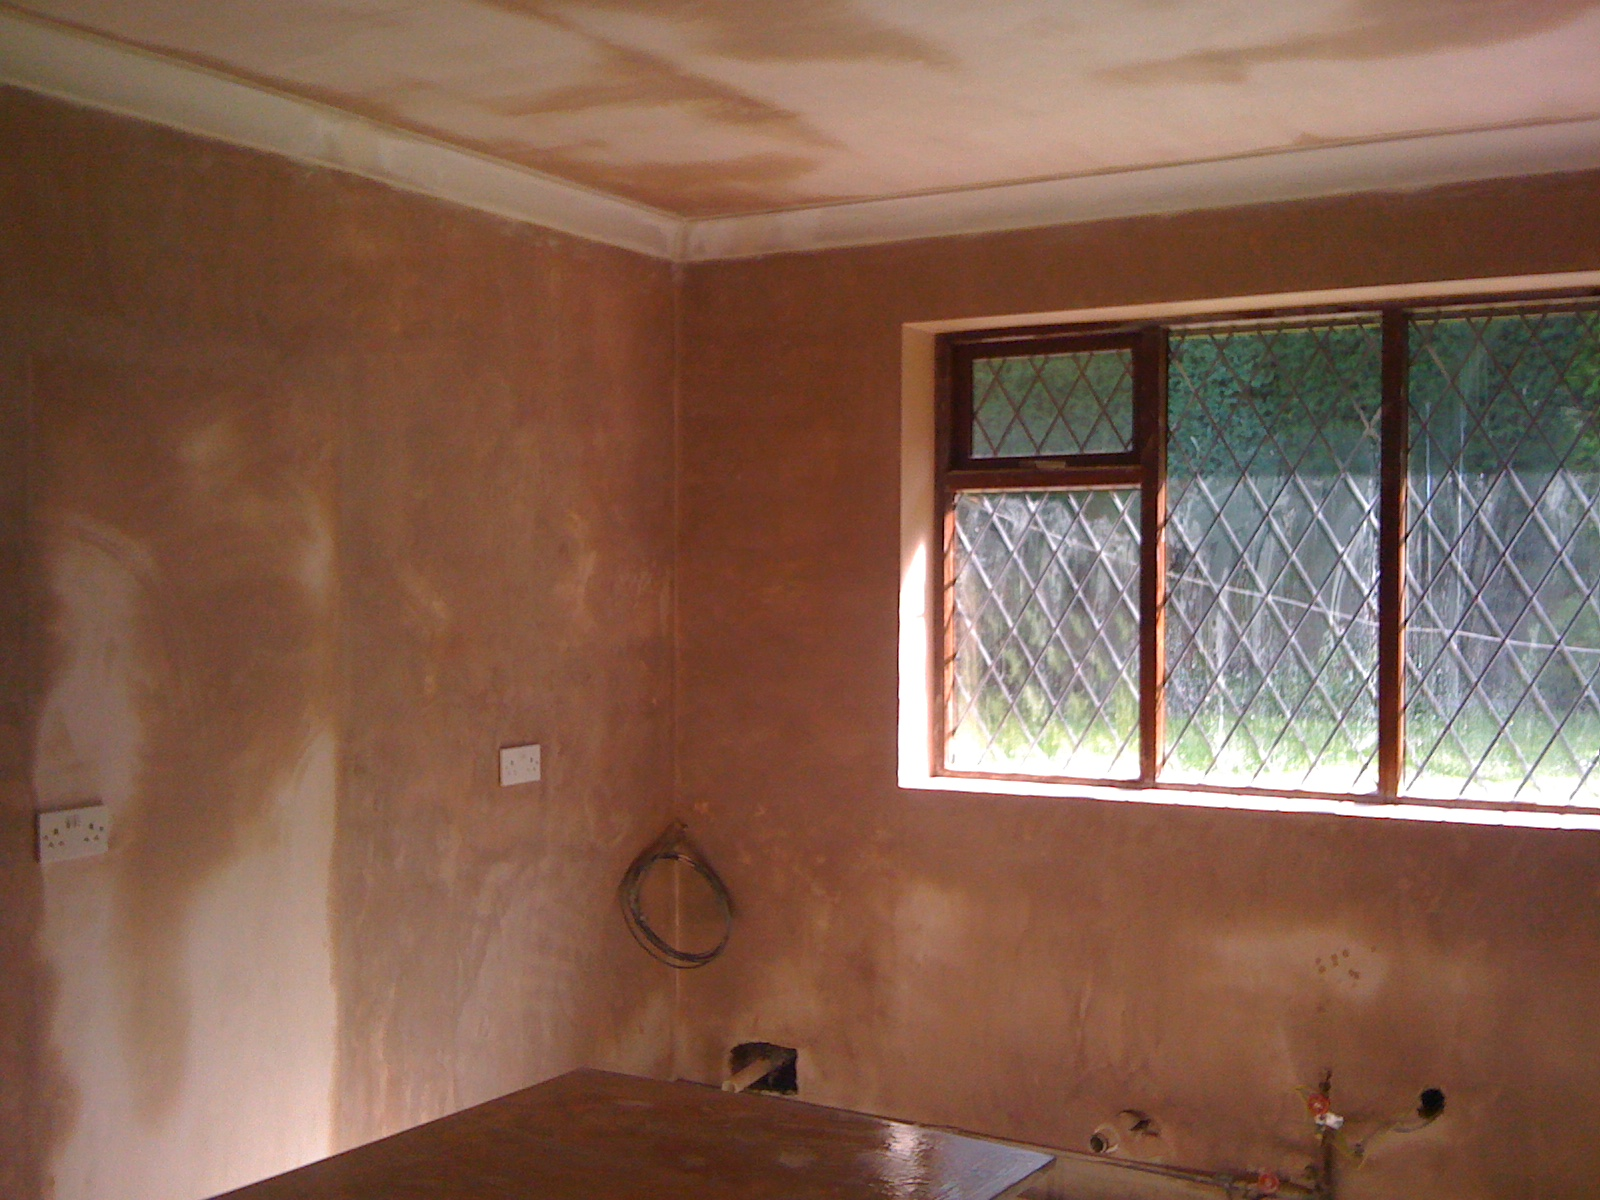 rendering and plastering London